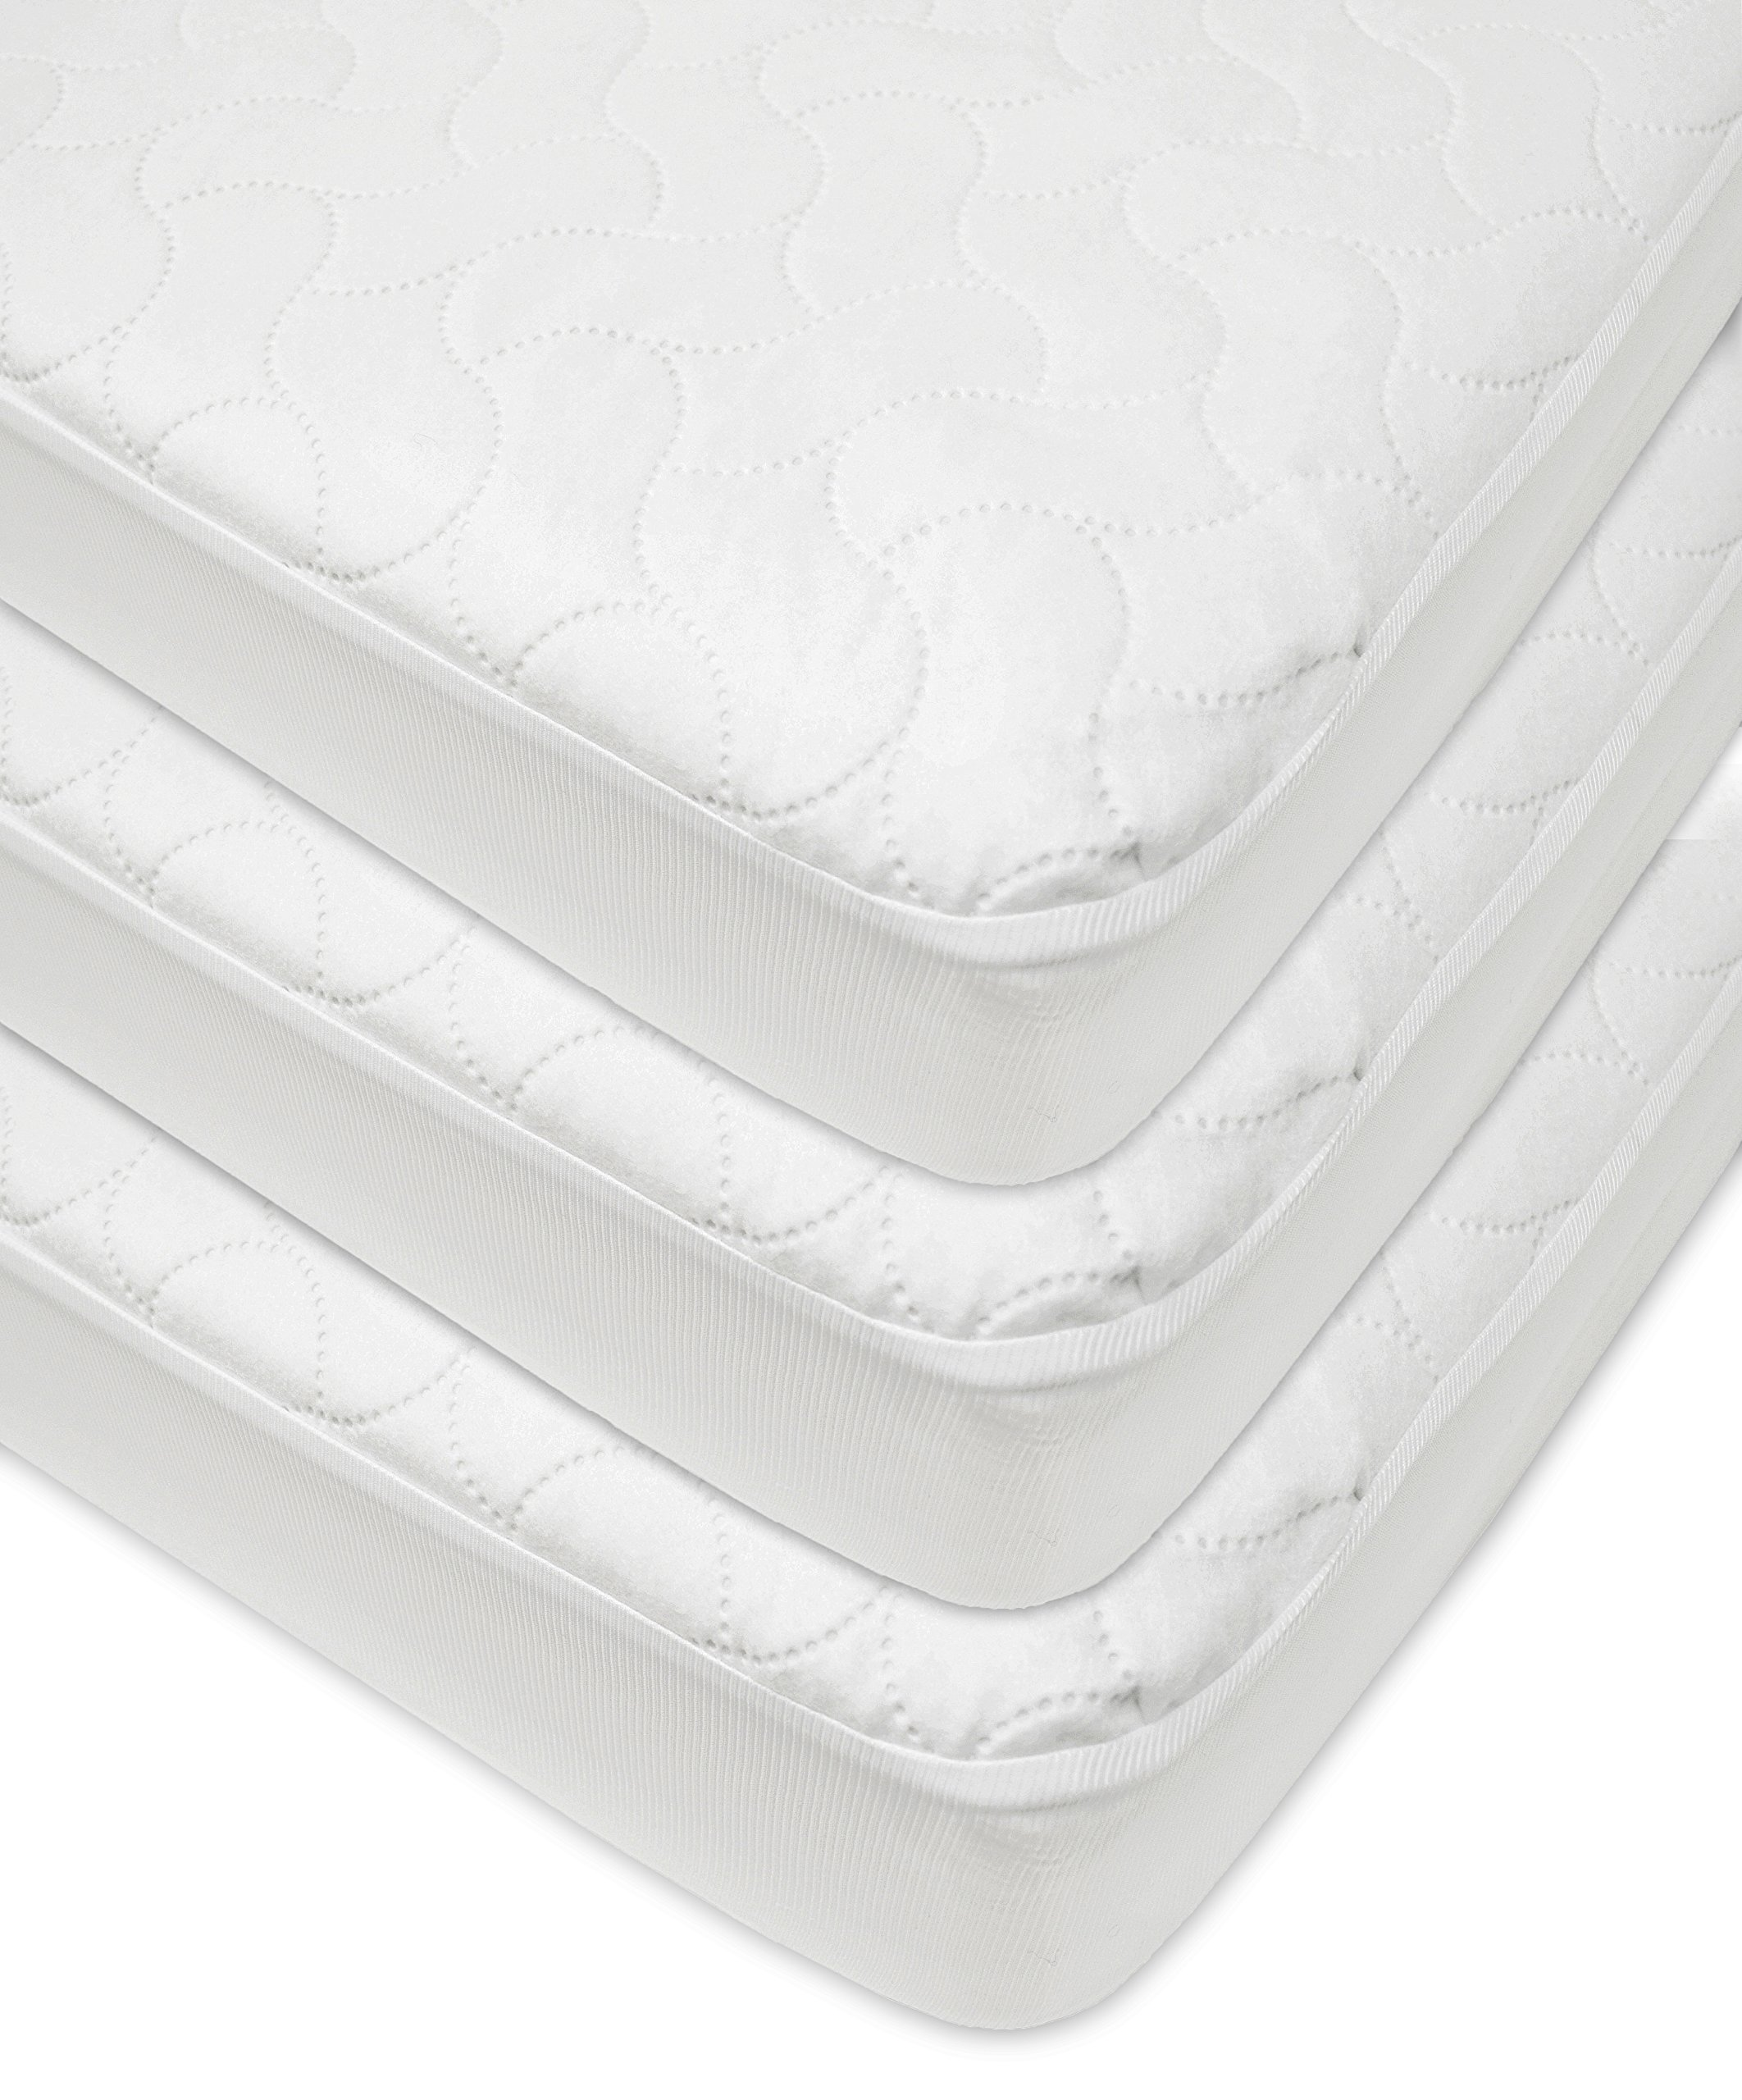 American Baby Company Waterproof Fitted Quilted Crib and Toddler Protective Pad Cover, White, 3 Pack, for Boys and Girls